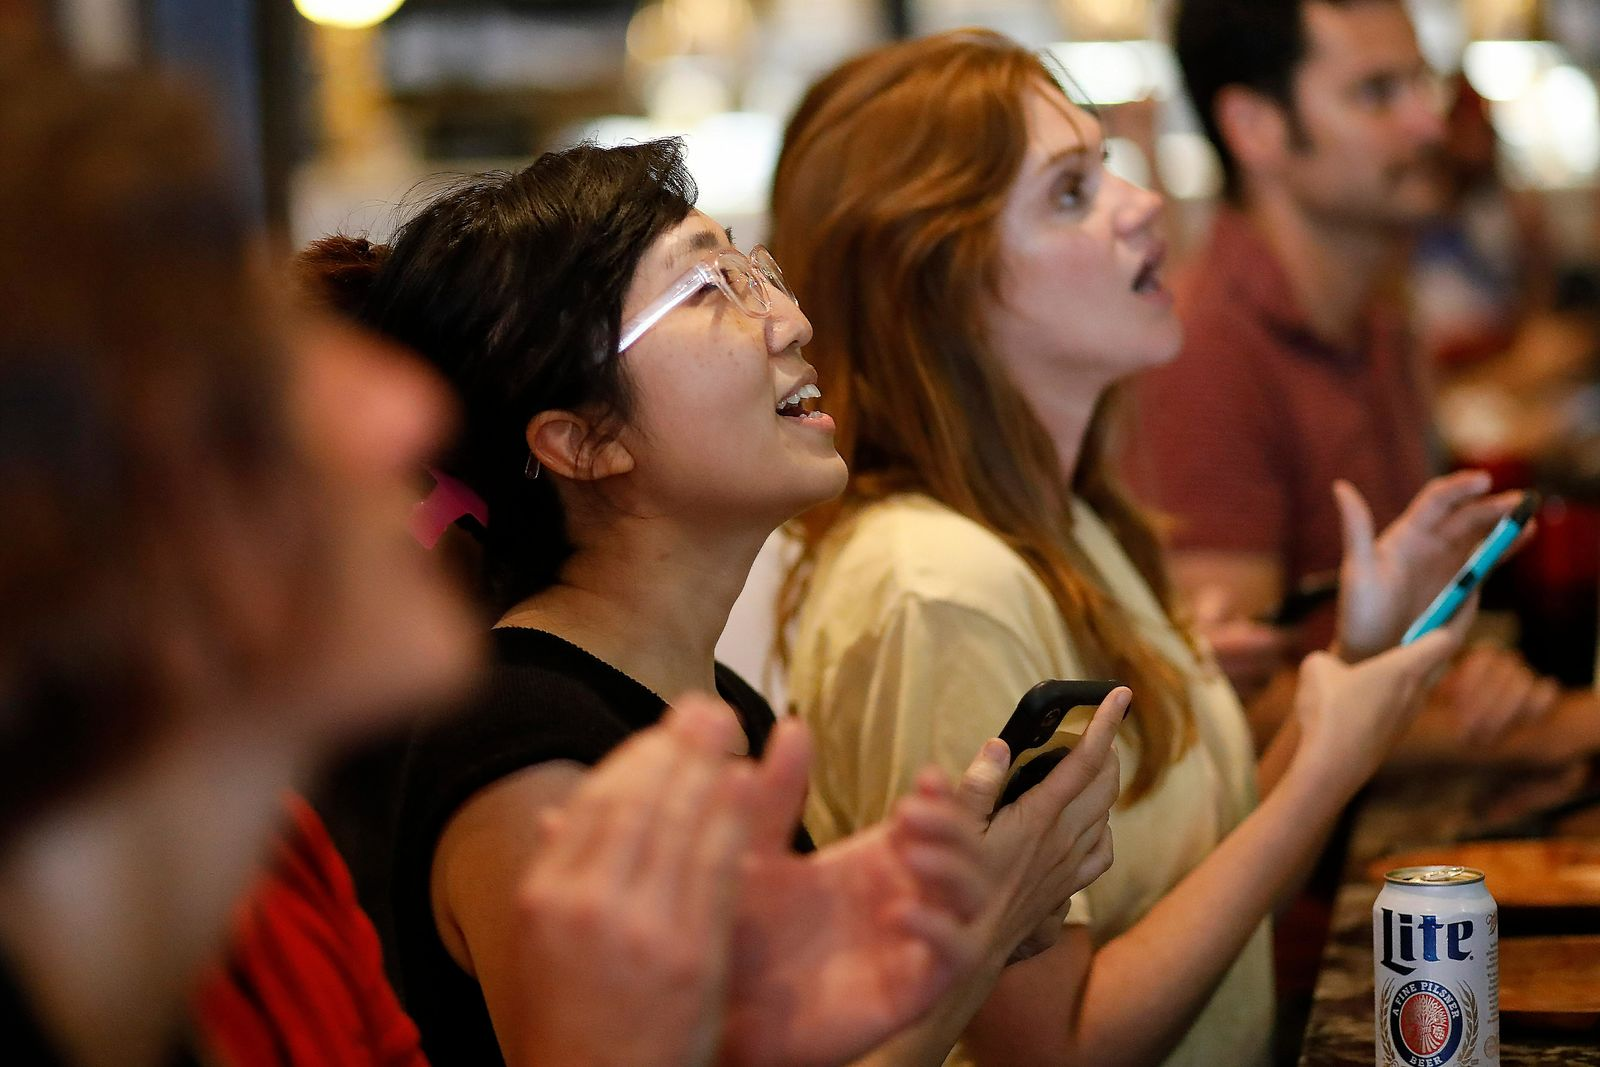 Fans watch television coverage of the United States' match against Thailand in France at soccer's Women's World Cup, Thursday, June 11, 2019, in Athens, Ga. (Joshua L. Jones/Athens Banner-Herald via AP)